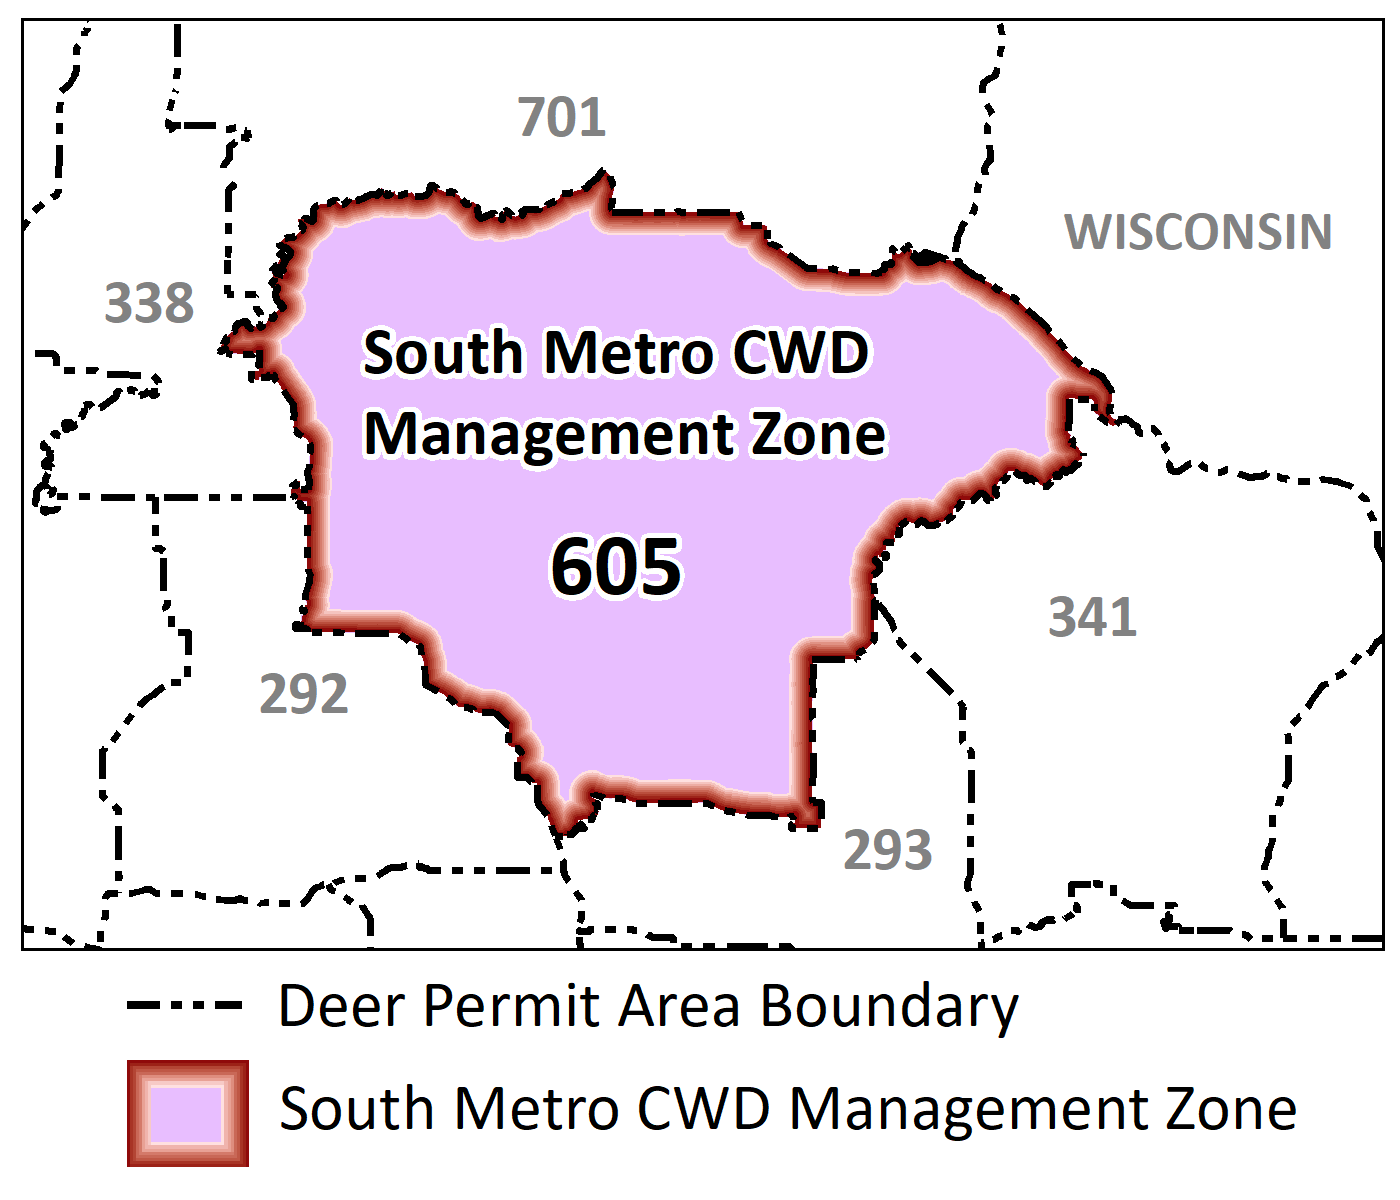 Map highlighting the DPA included in the south metro management zone: 605.